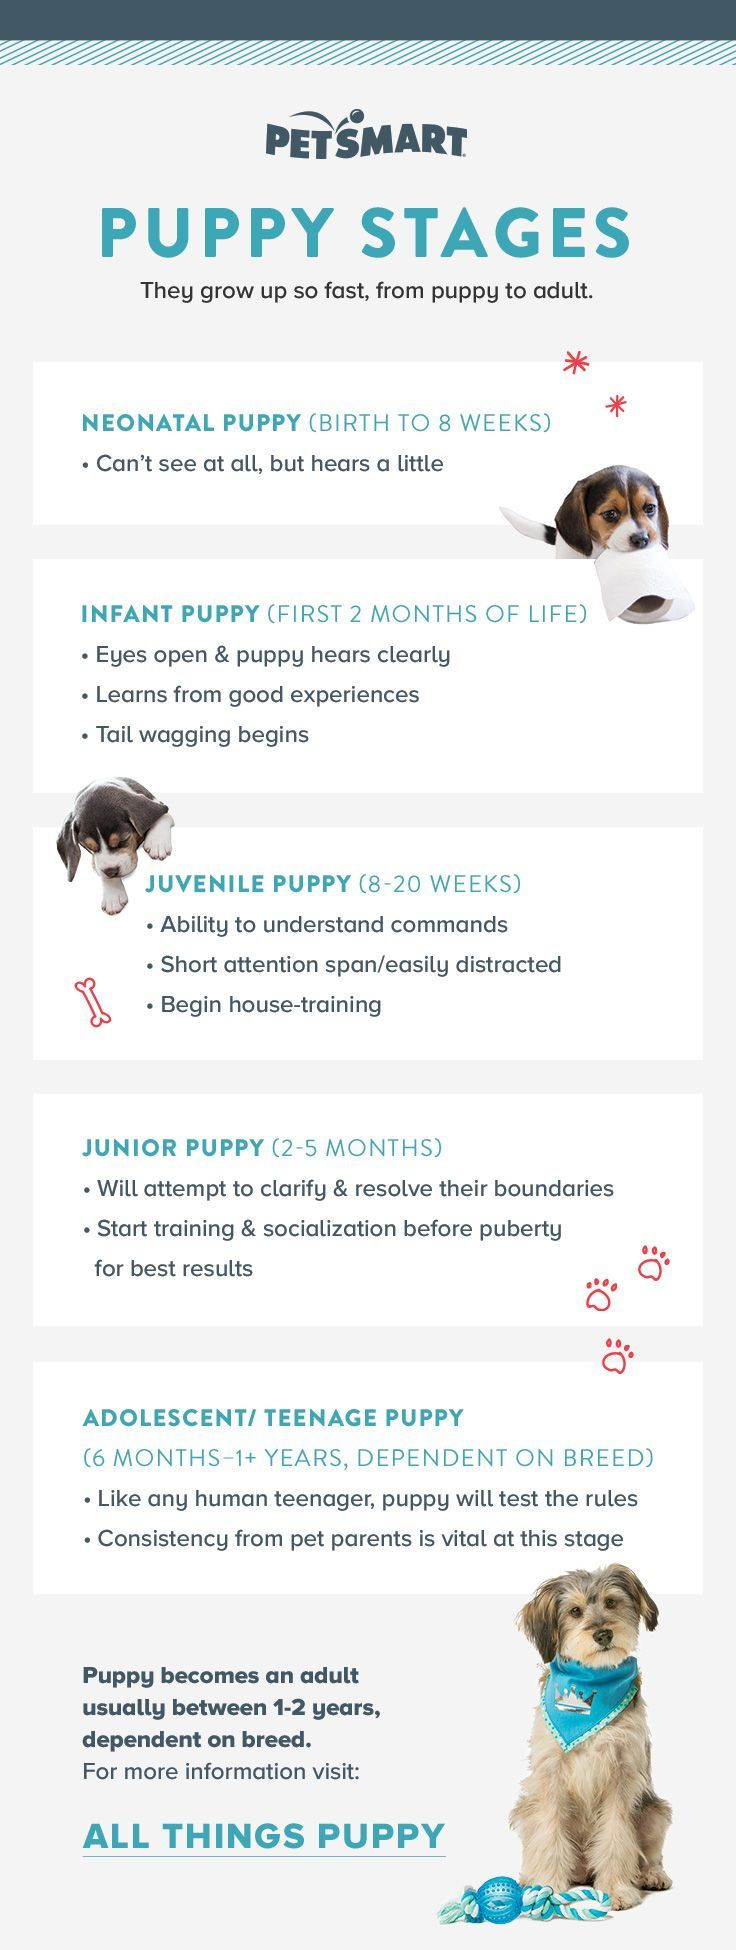 Did you know there are so many stages in your puppy's